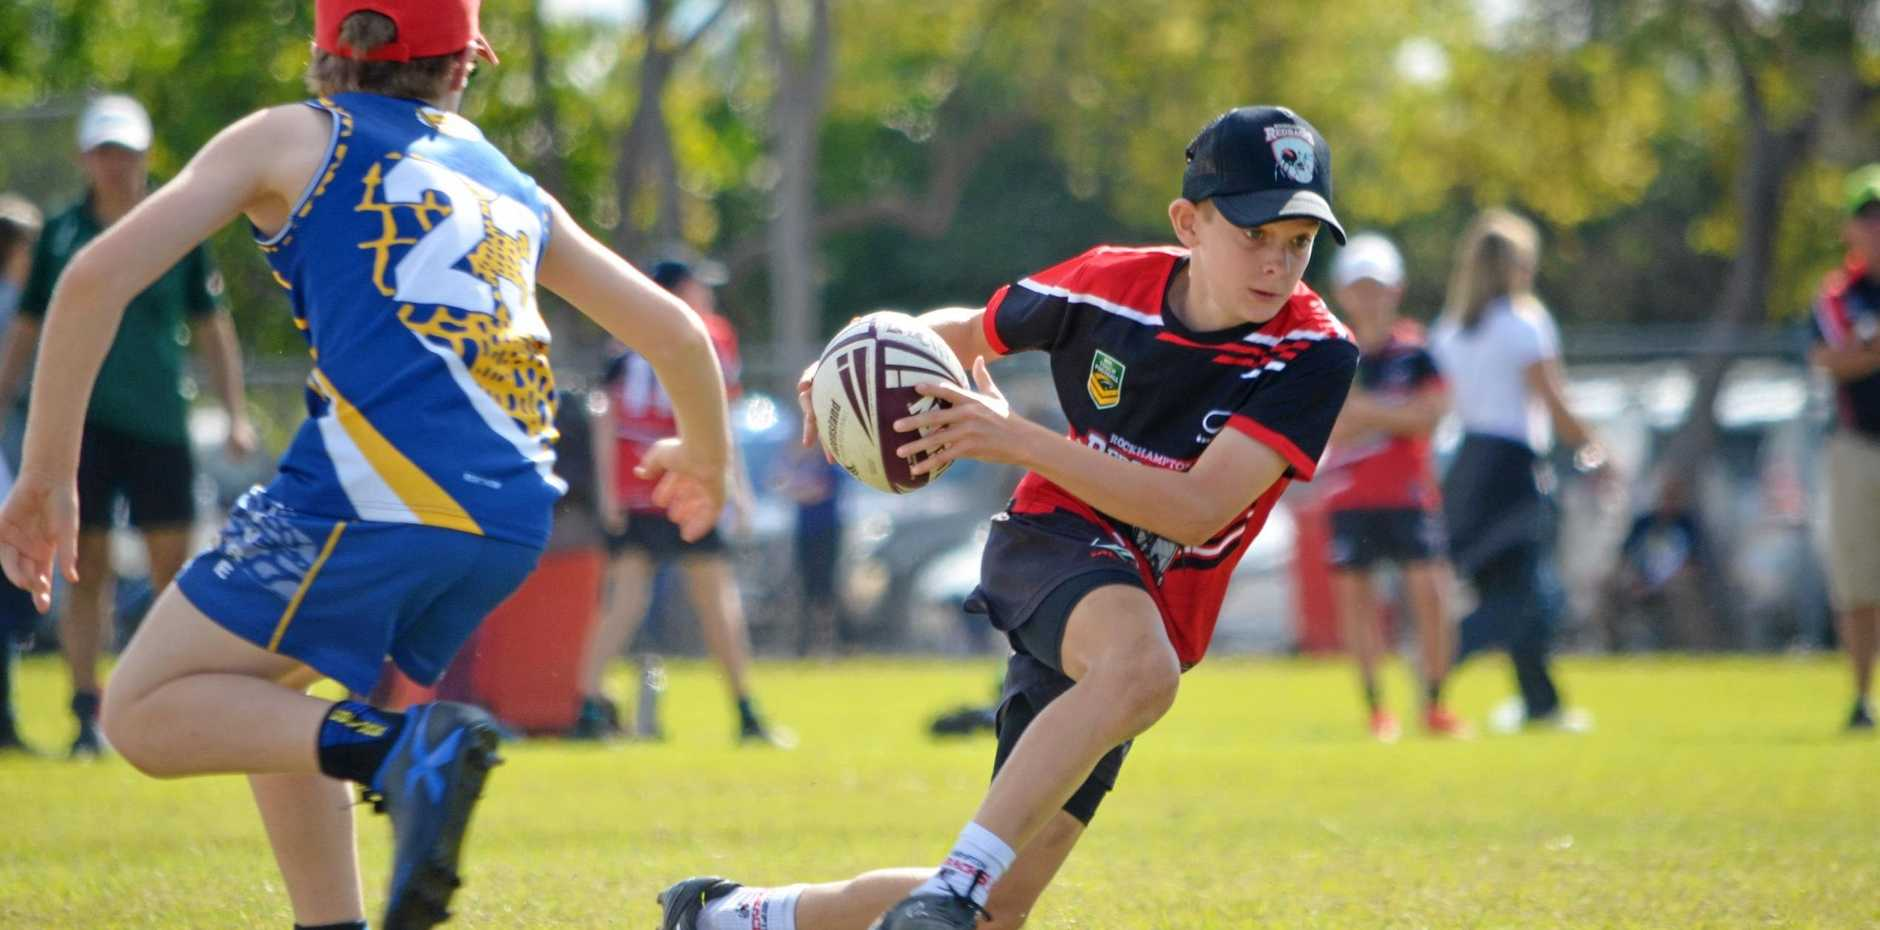 ONE TO WATCH: Queensland representative Clancy Hohn will line up with the Rocky Red under-14 boys team this weekend.